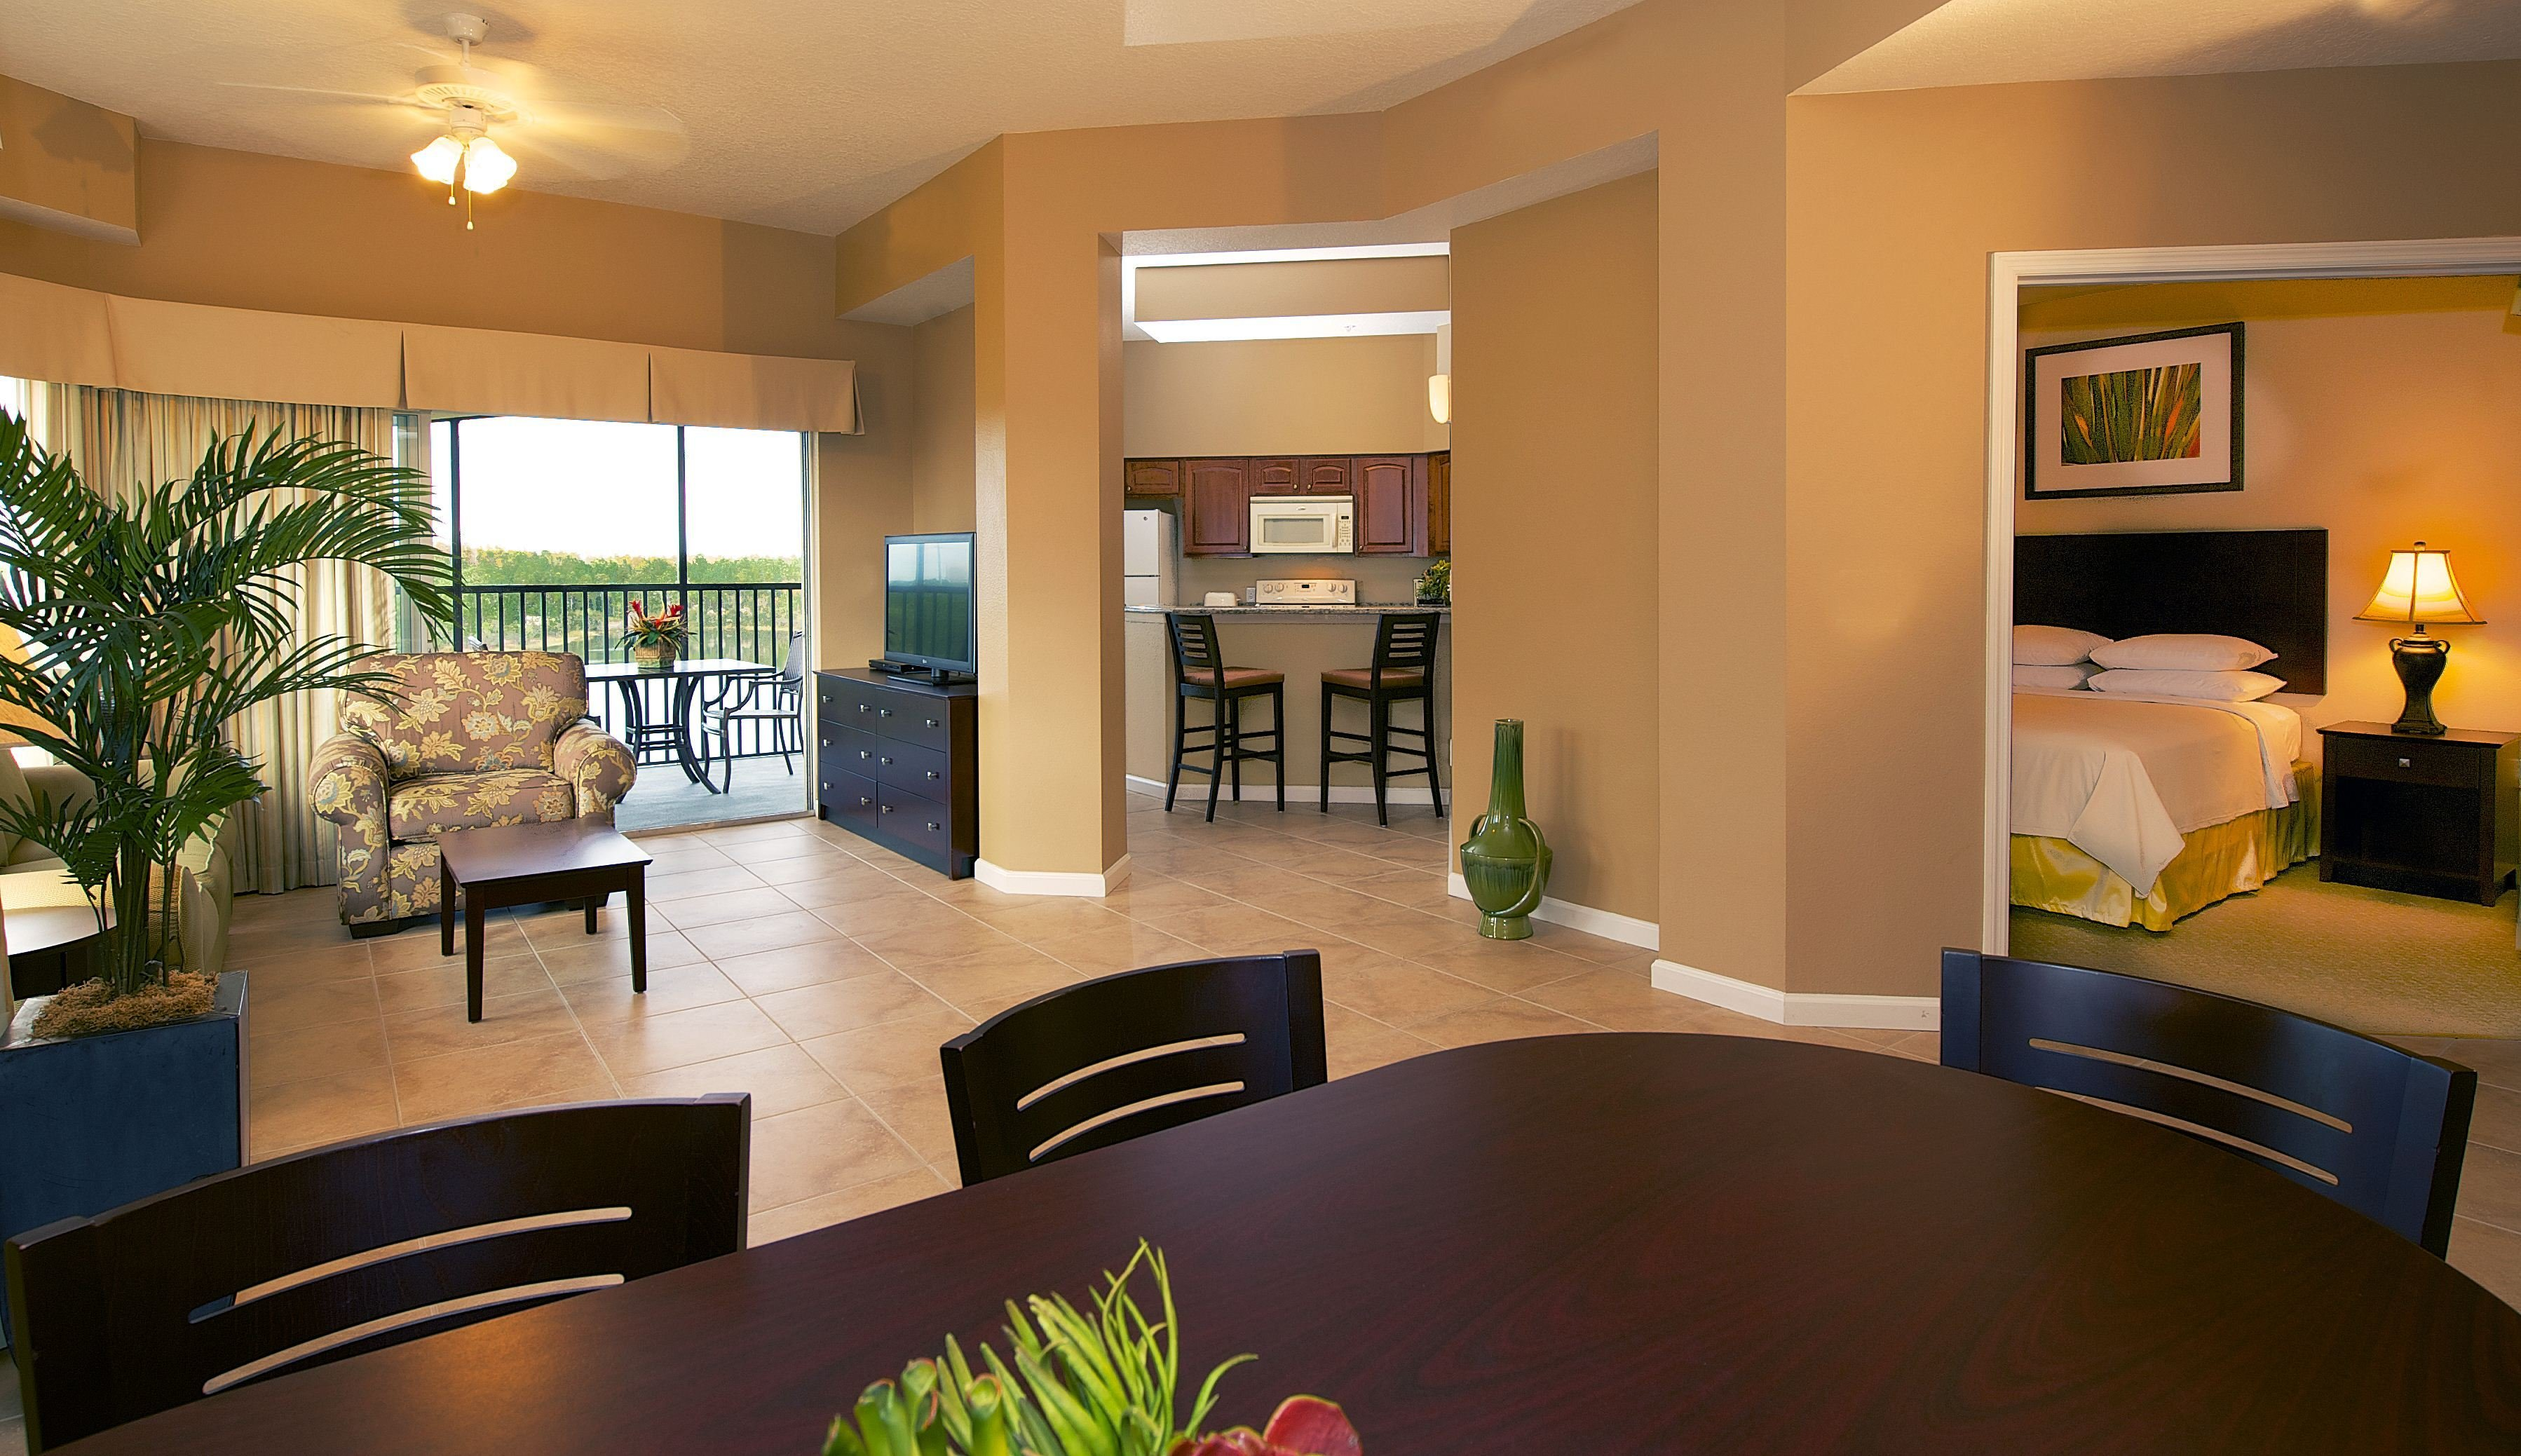 Best 3 Bedroom Suite Hotels Near Disney World Www Indiepedia Org With Pictures